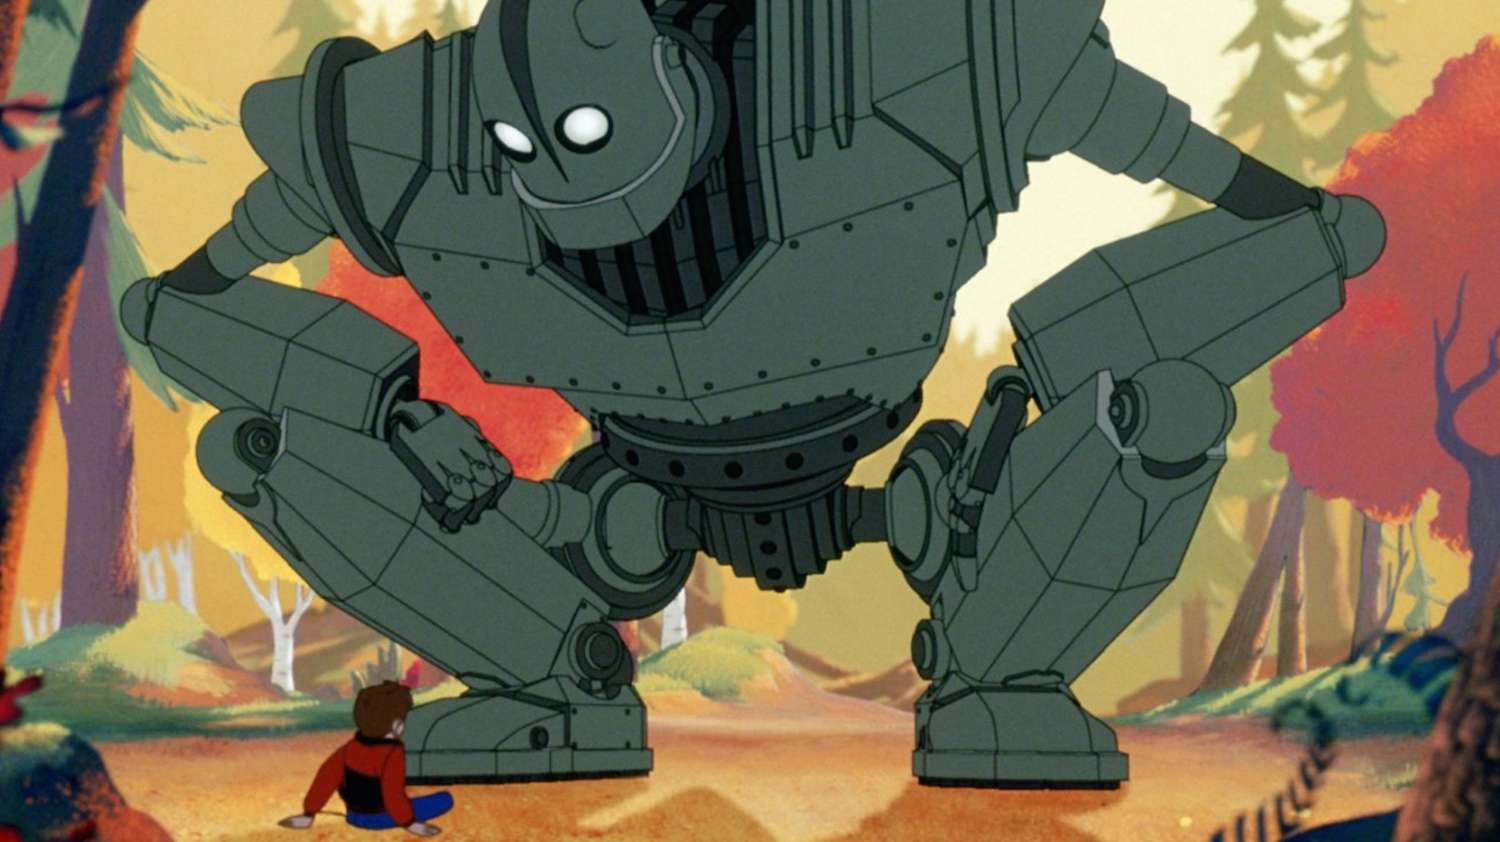 Hogarth befriends the Iron Giant